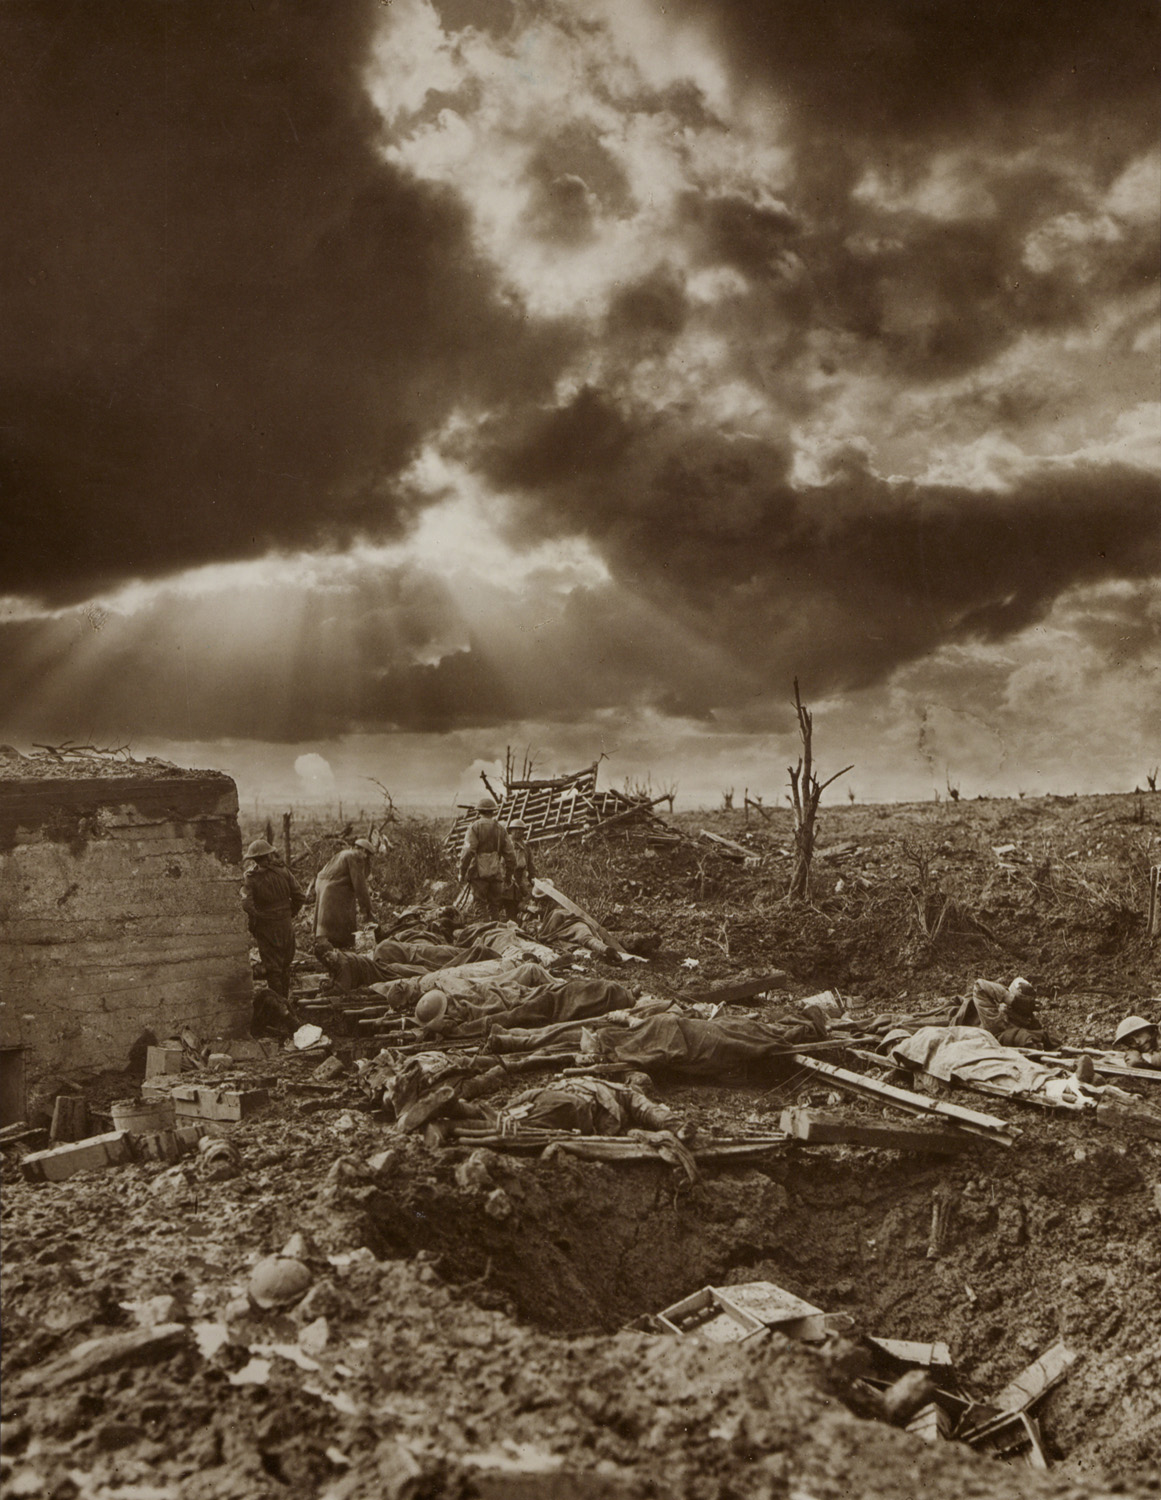 Frank-Hurley-2008-Photographing-the-First-World-War-Hurley-Document-Name-01-copy sm